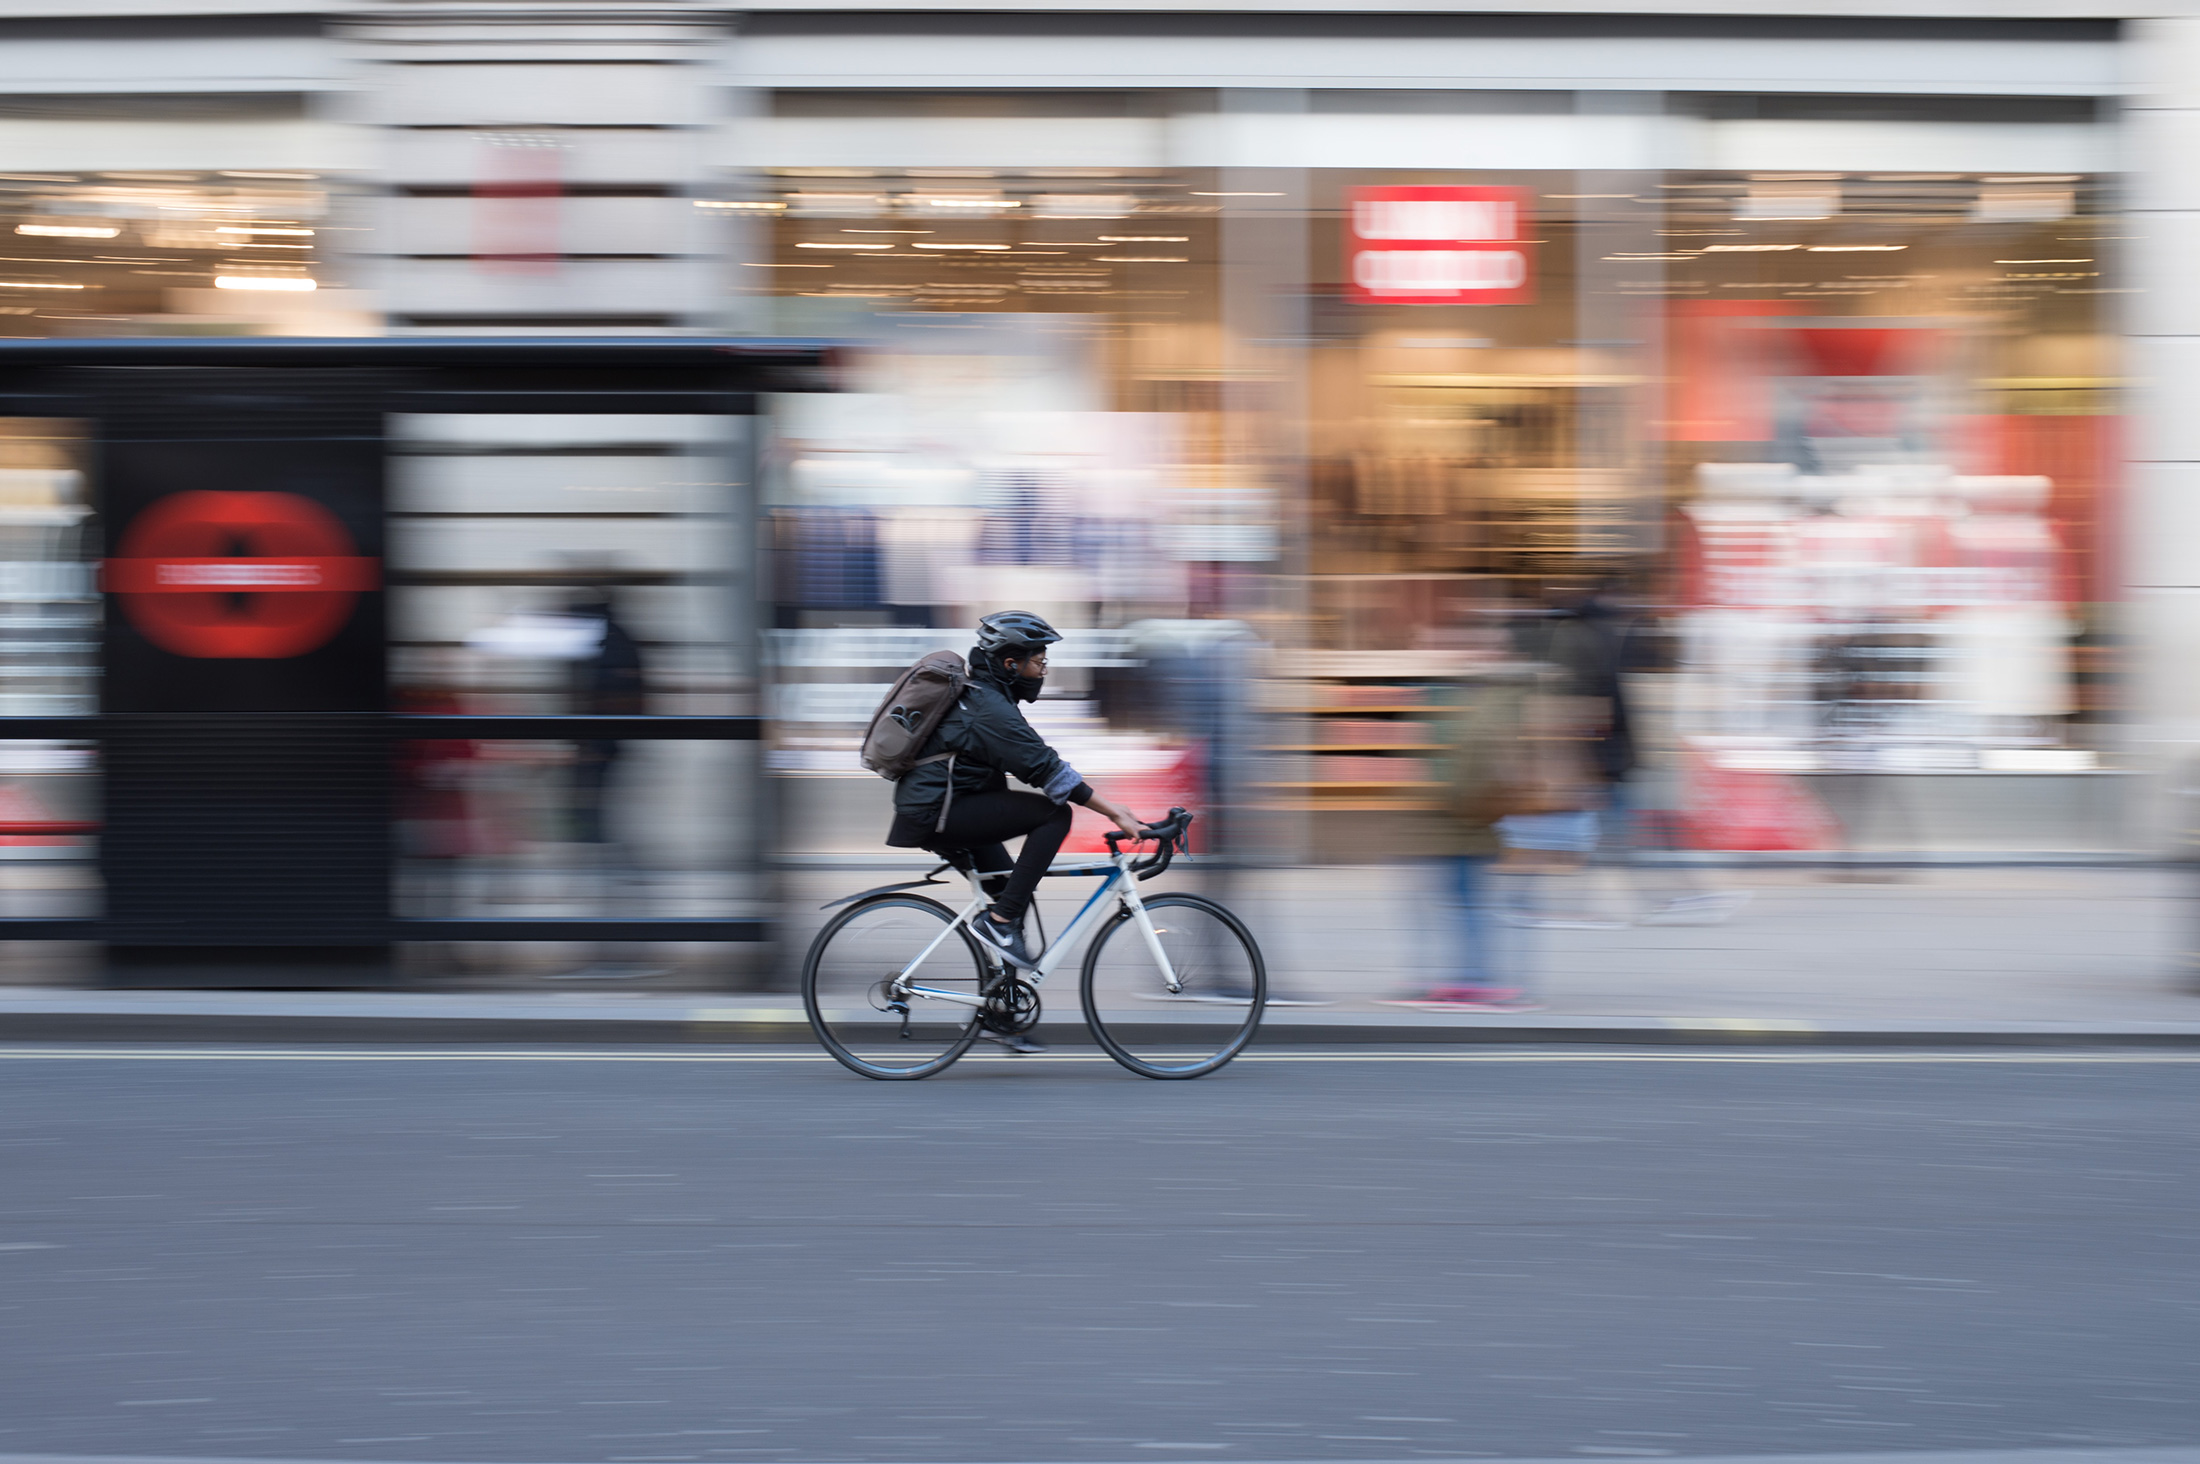 Timelapse of a cyclist in a city street